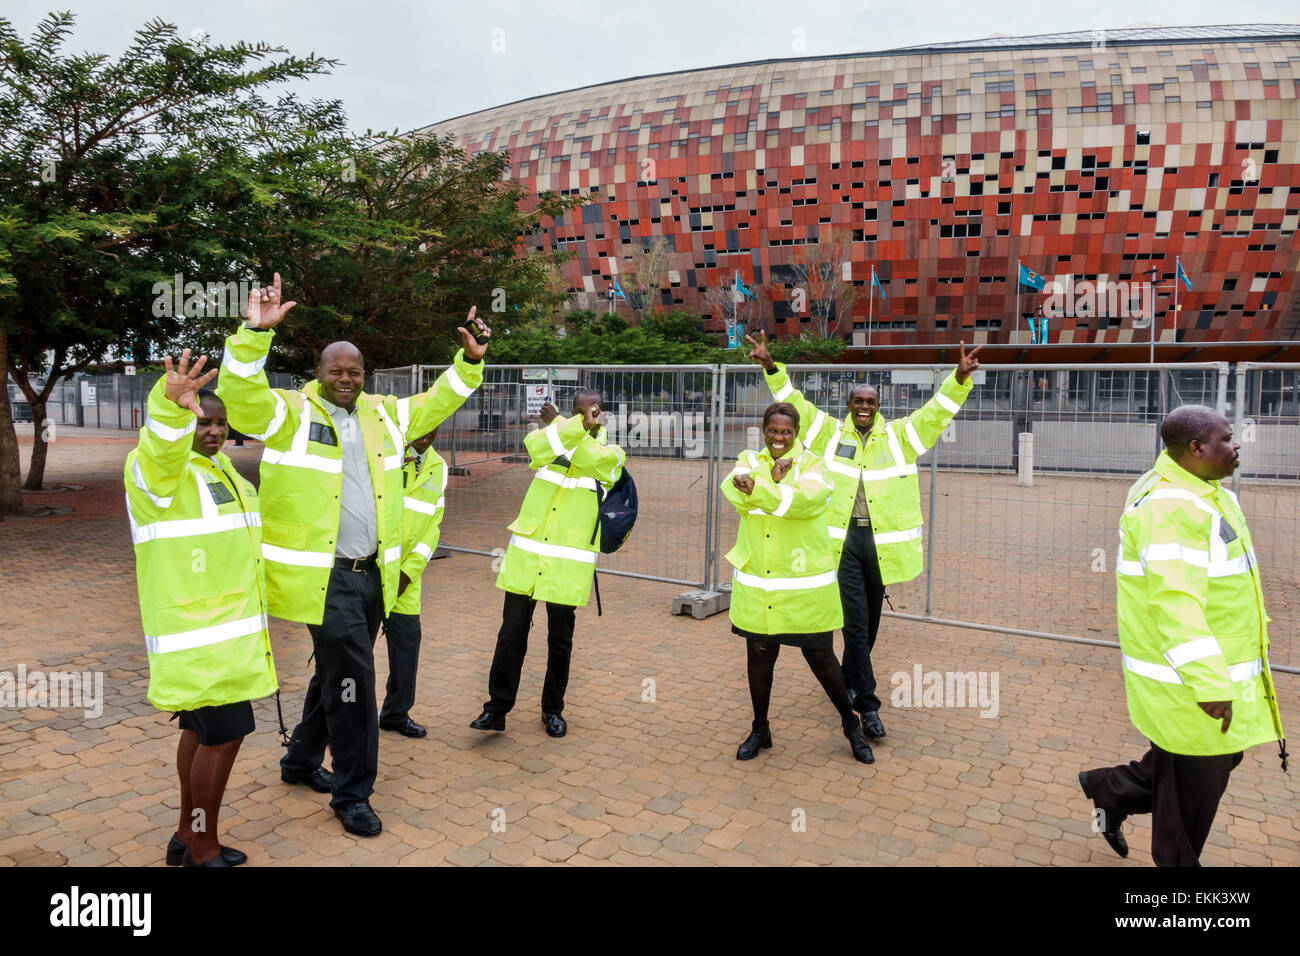 Game for coworkers - Johannesburg South Africa African Nasrec Fnb Soccer City Stadium The Calabash Coworkers Black Man Woman Security Guards Uniform Before Game Football